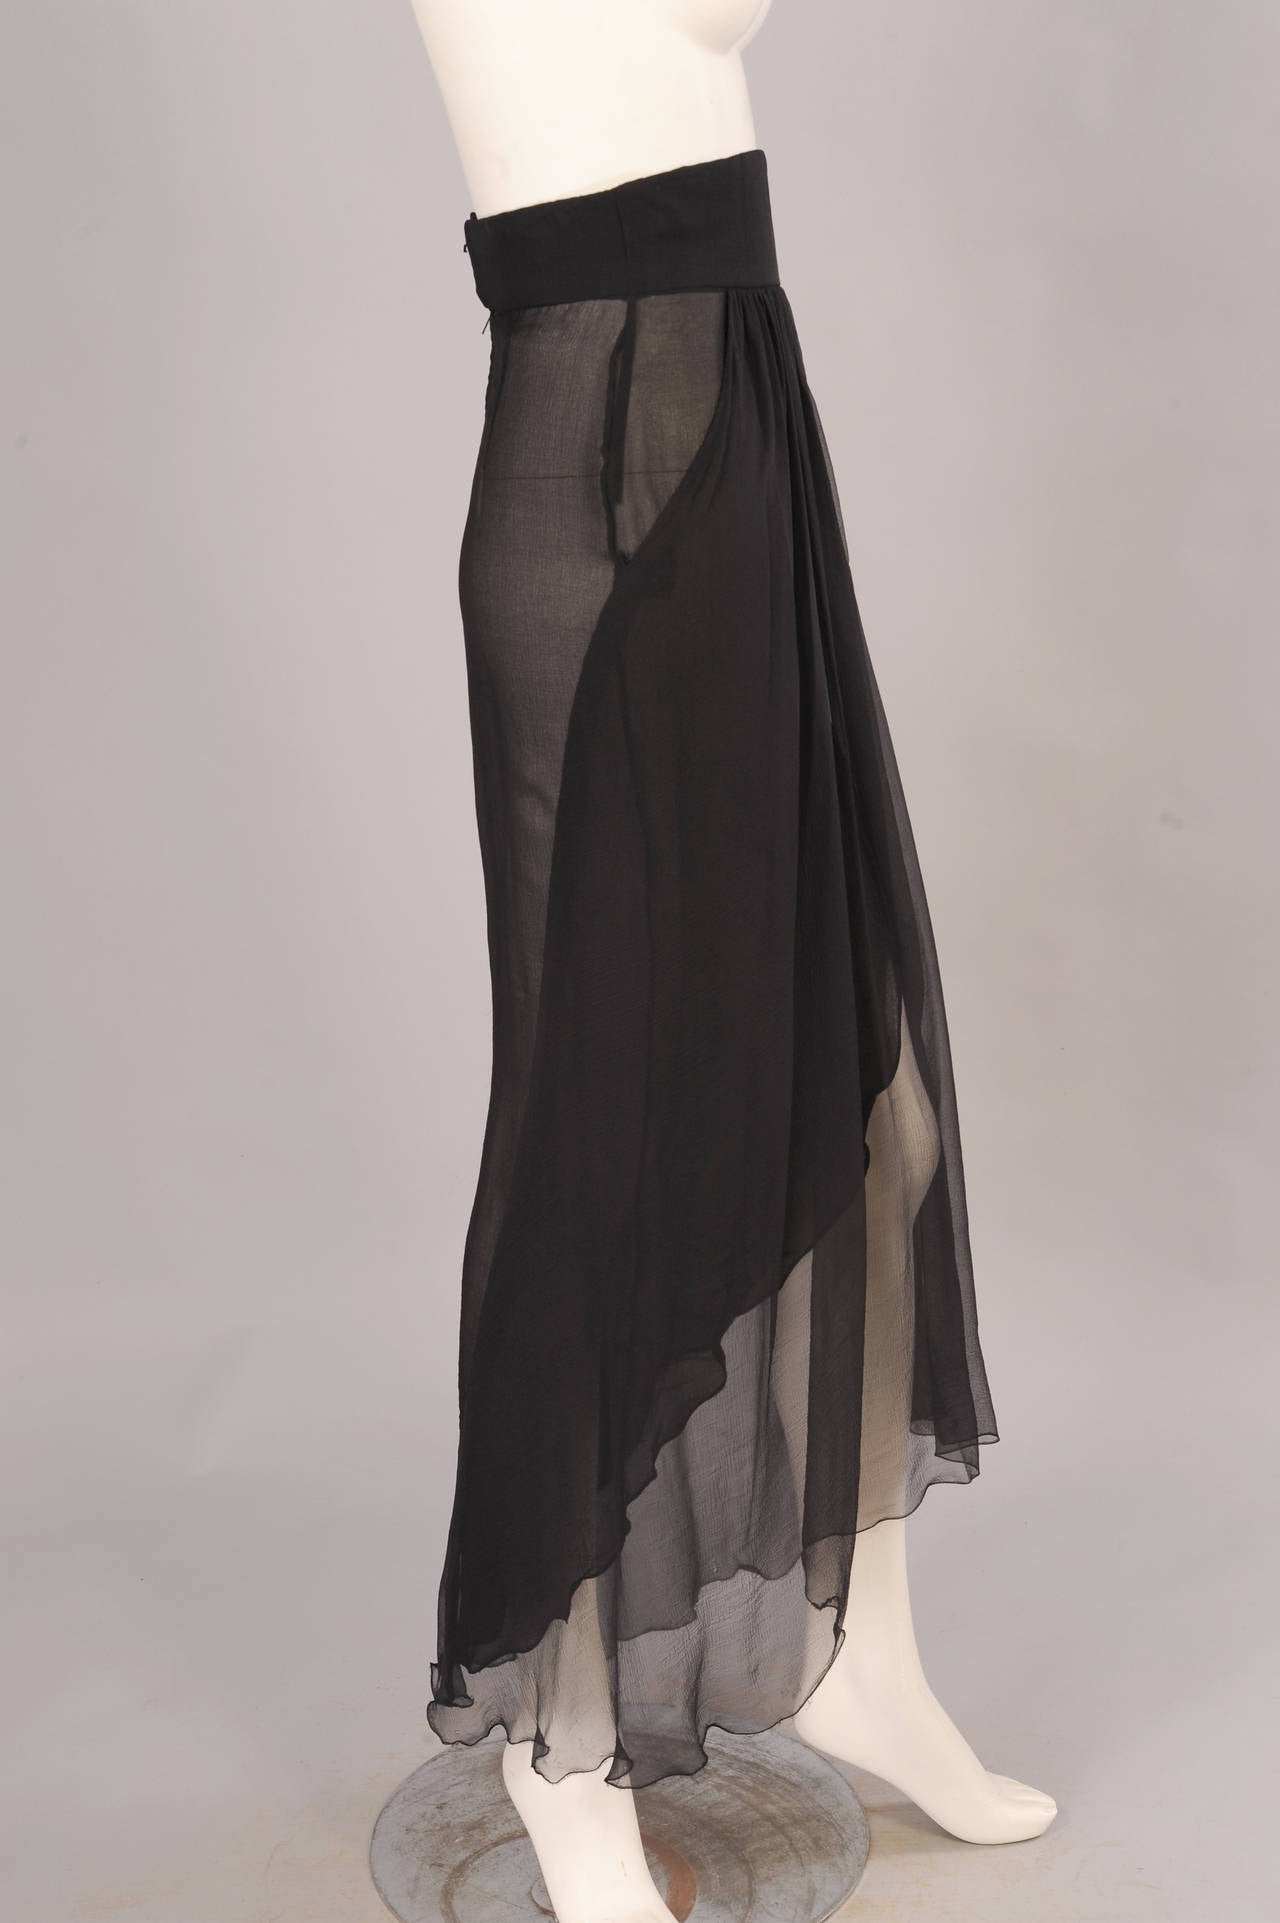 Yves Saint Laurent Haute Couture Sheer Silk Chiffon Skirt 4